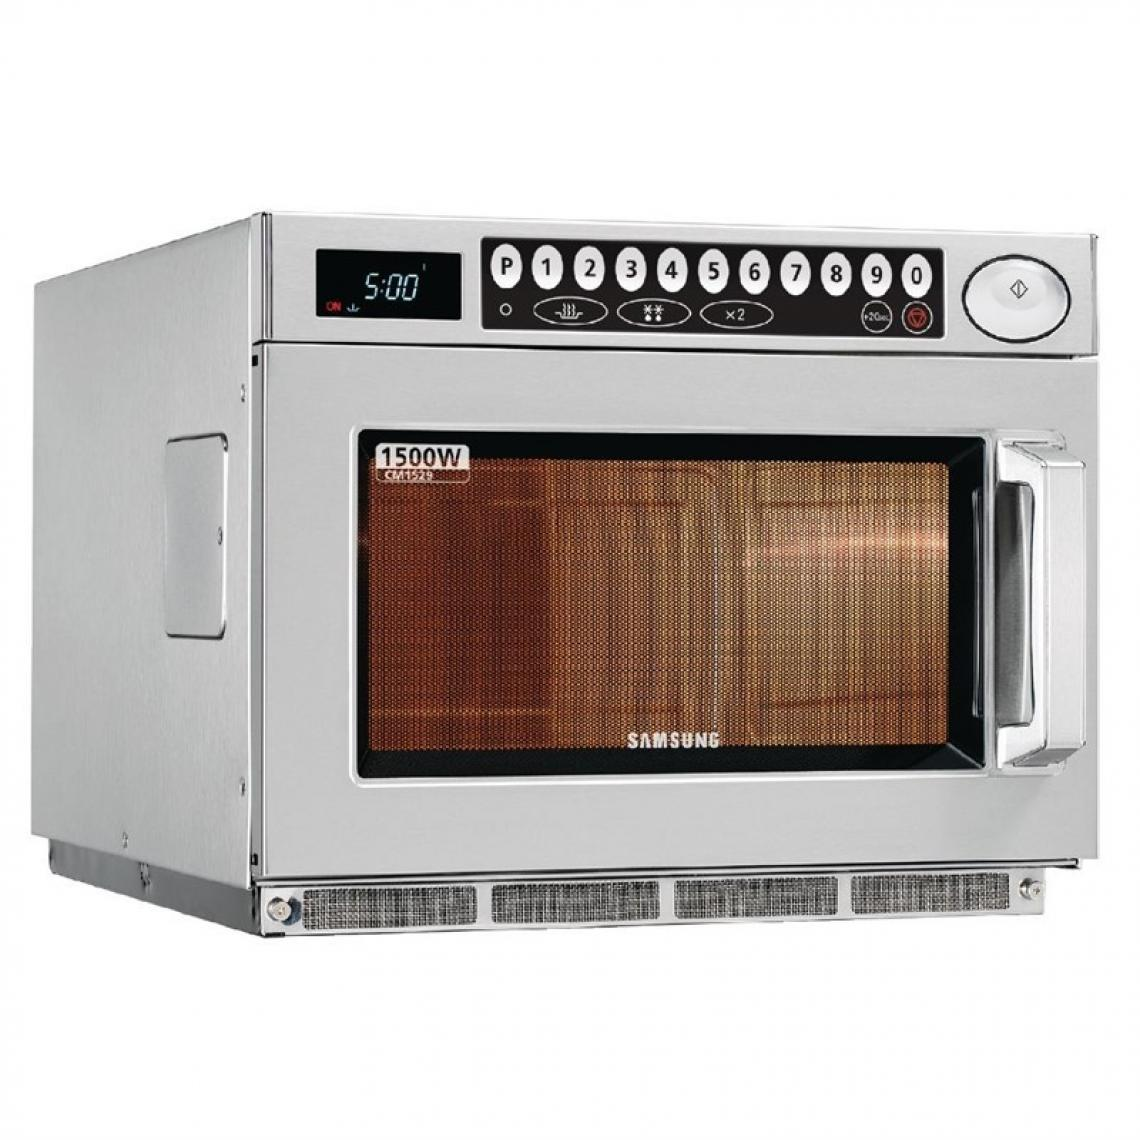 Samsung Micro-Ondes Professionnel Programmable 26 Litres - 1,5 kW - Samsung - 2600 cl